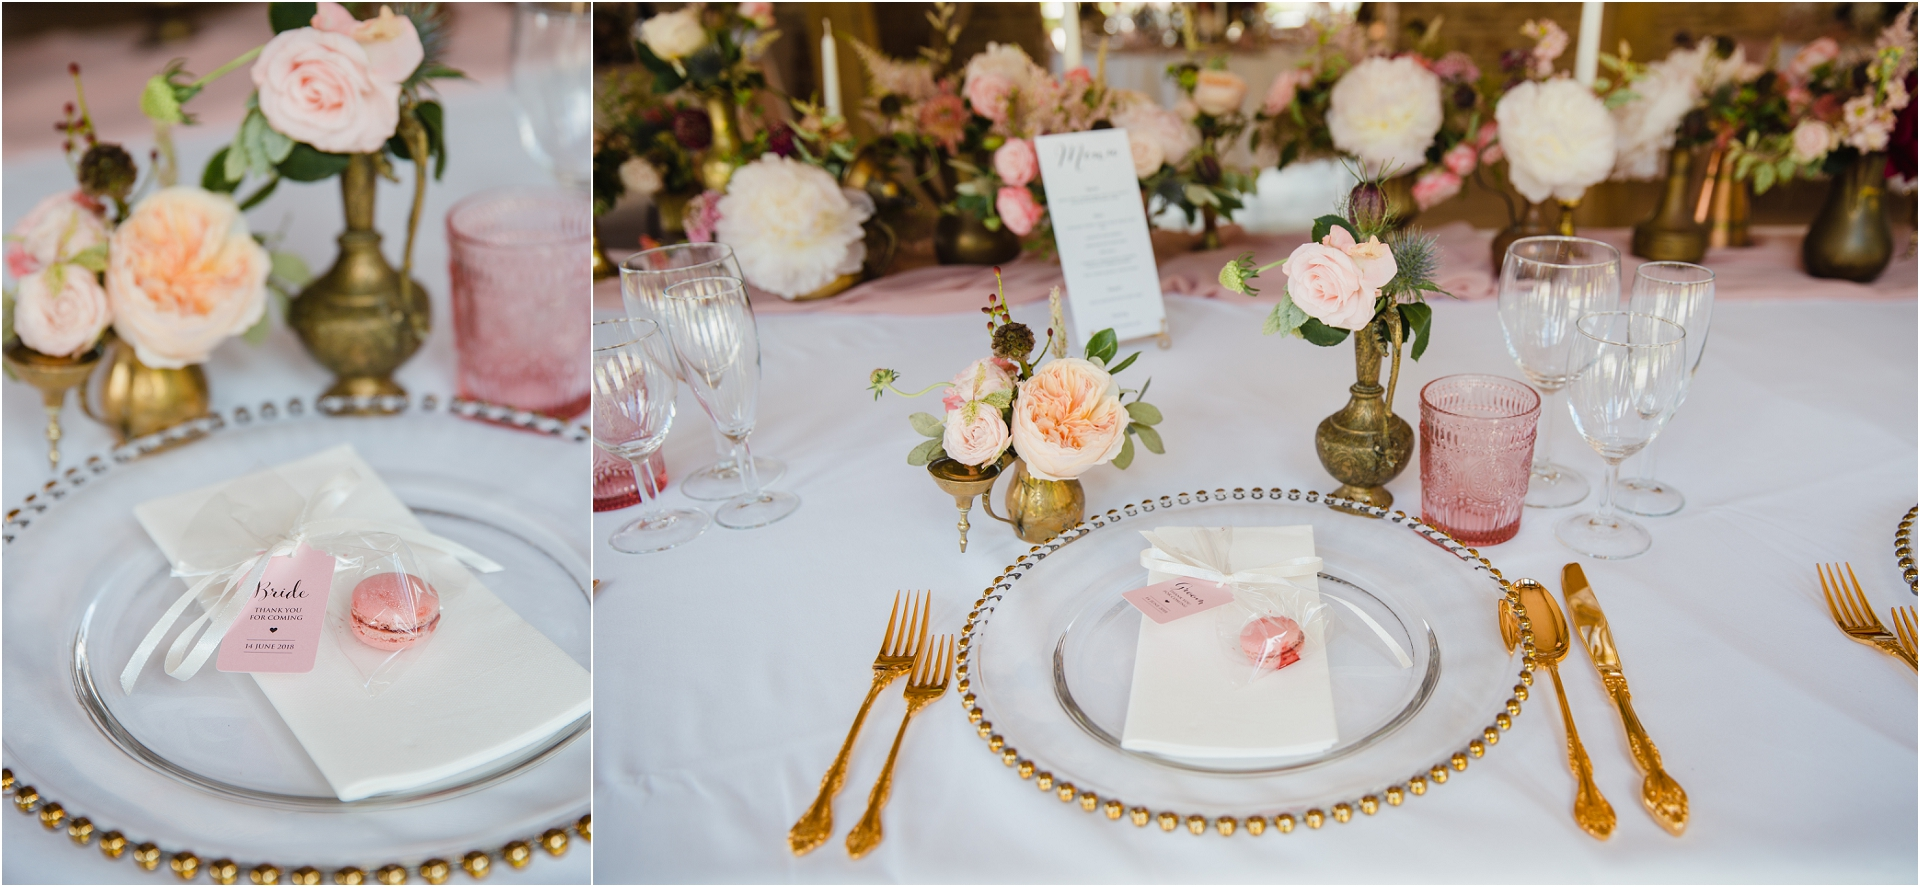 gold and rose wedding decor